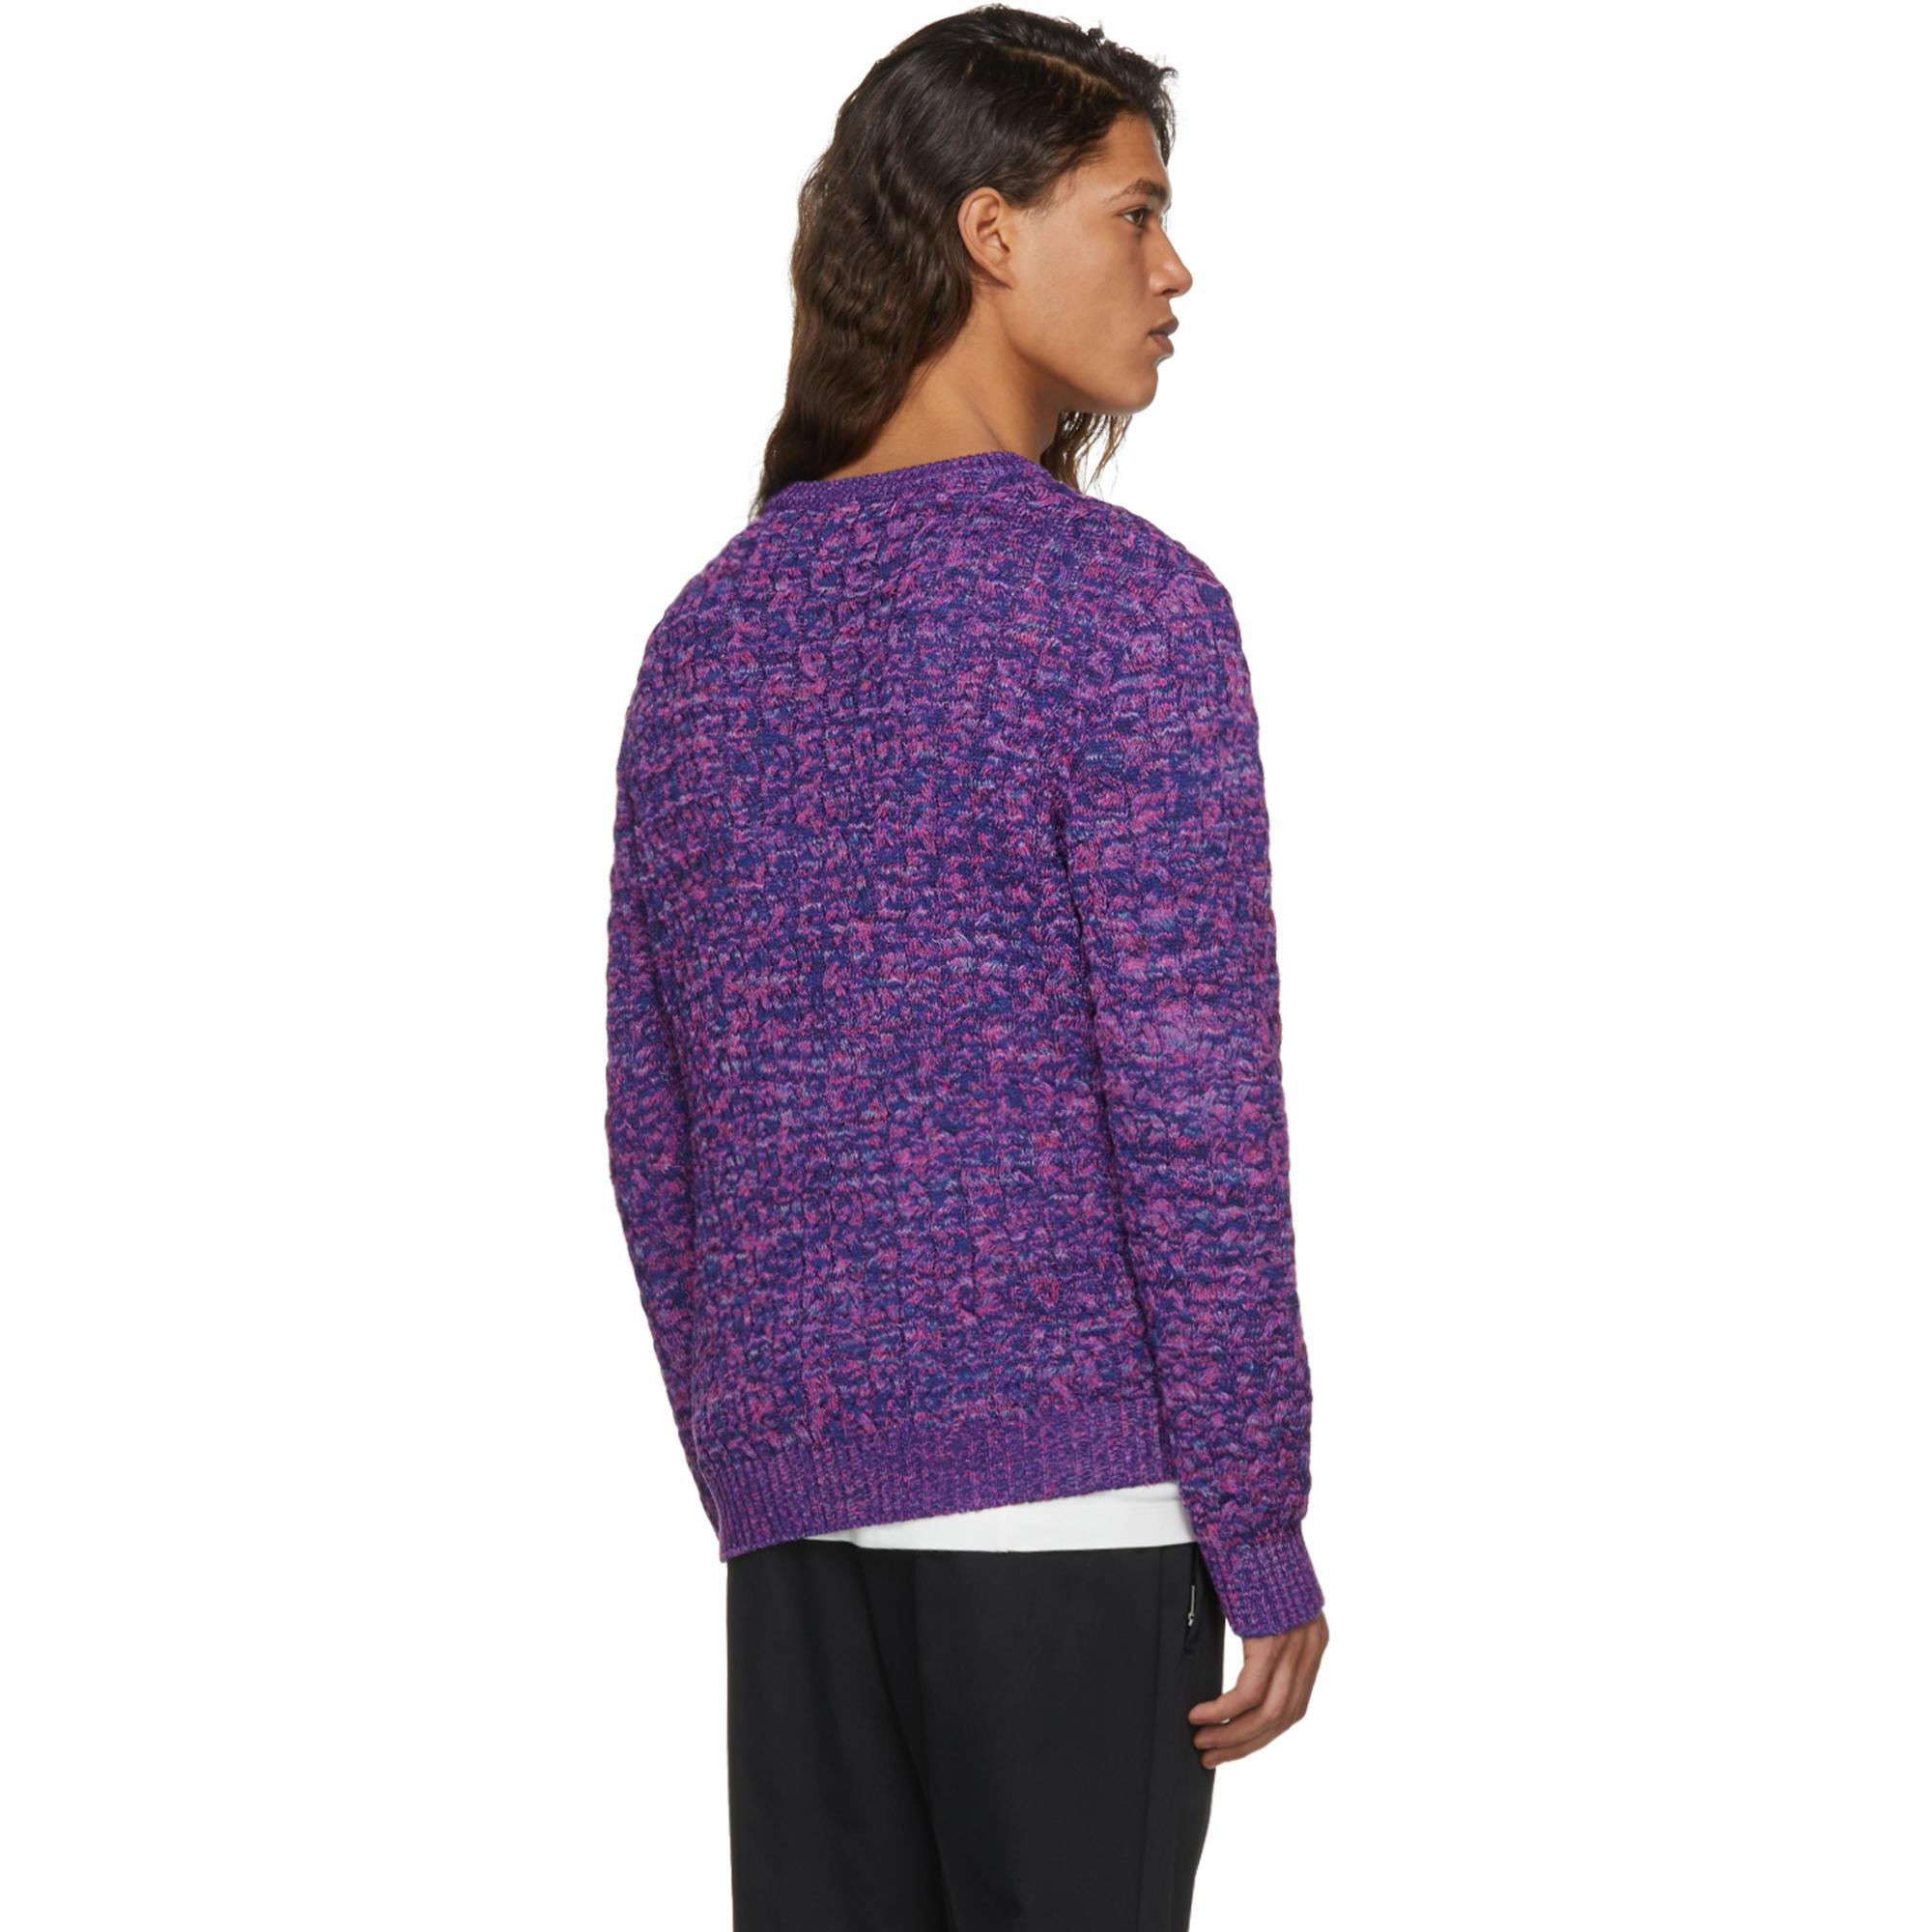 Cheap Clearance Purple And Blue Cable Knit Sweater Missoni Discount